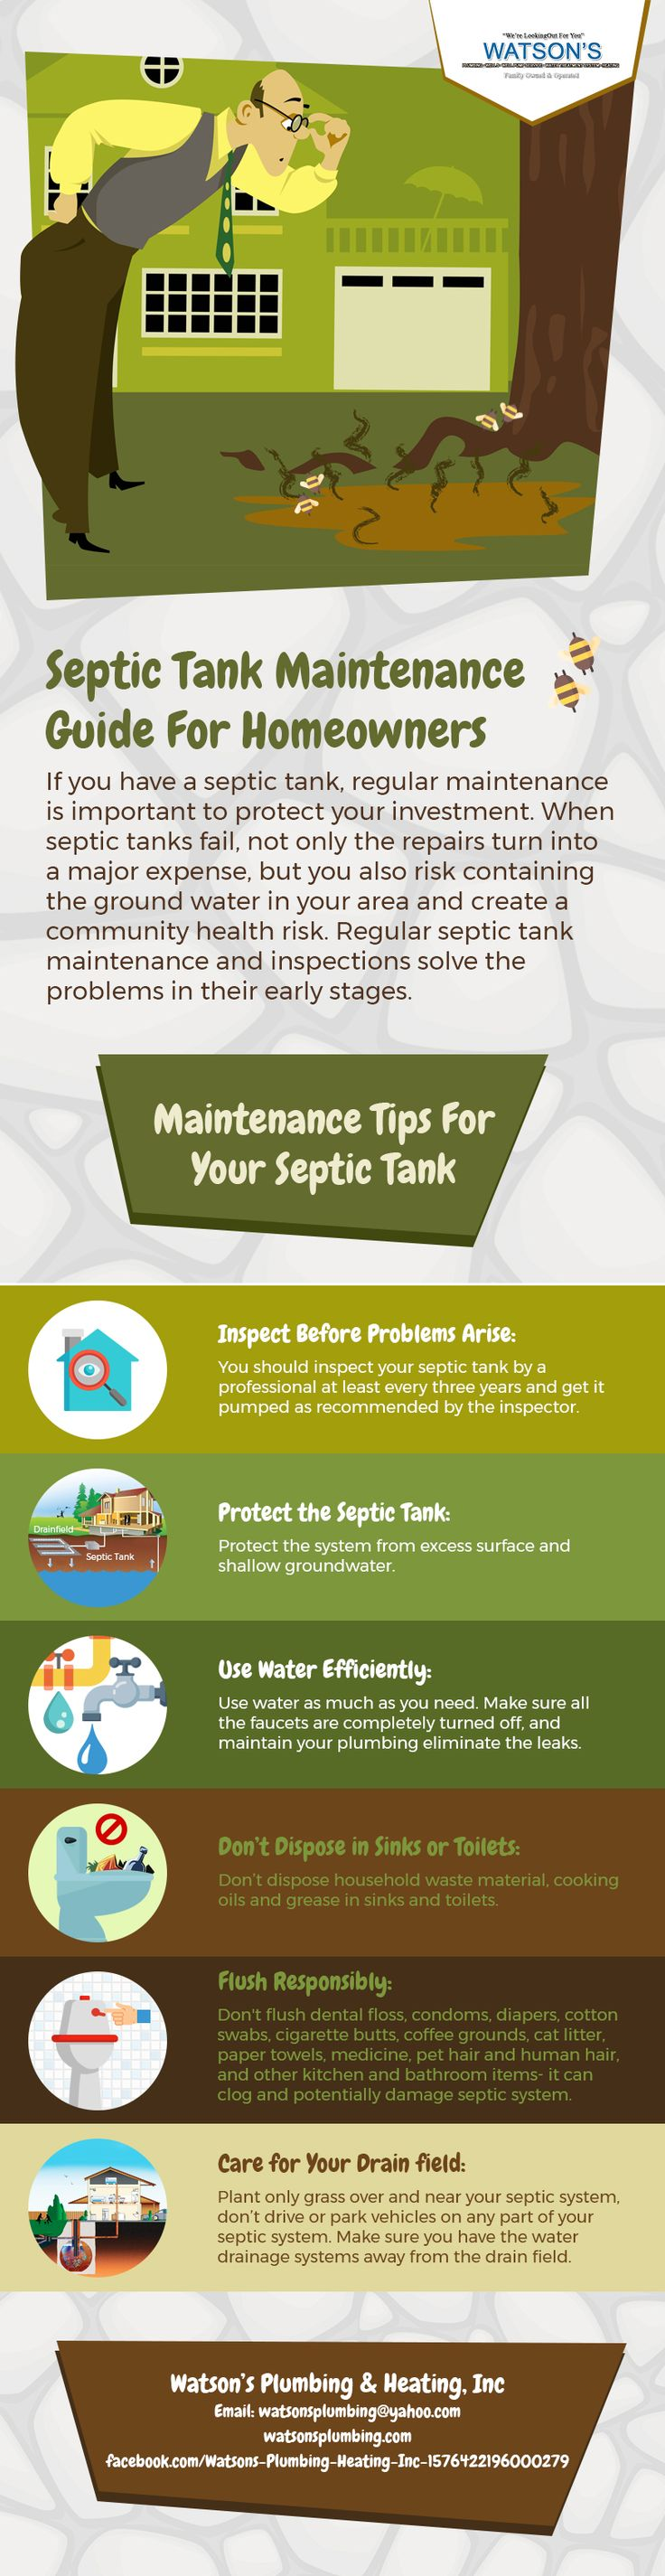 If you have a septic tank, regular maintenance is important to protect your investment. When septic tanks fail, not only the repairs turn into a major expense, but you also risk containing the ground water in your area and create a community health risk. Regular septic tank maintenance and inspections solve the problems in their early stages.